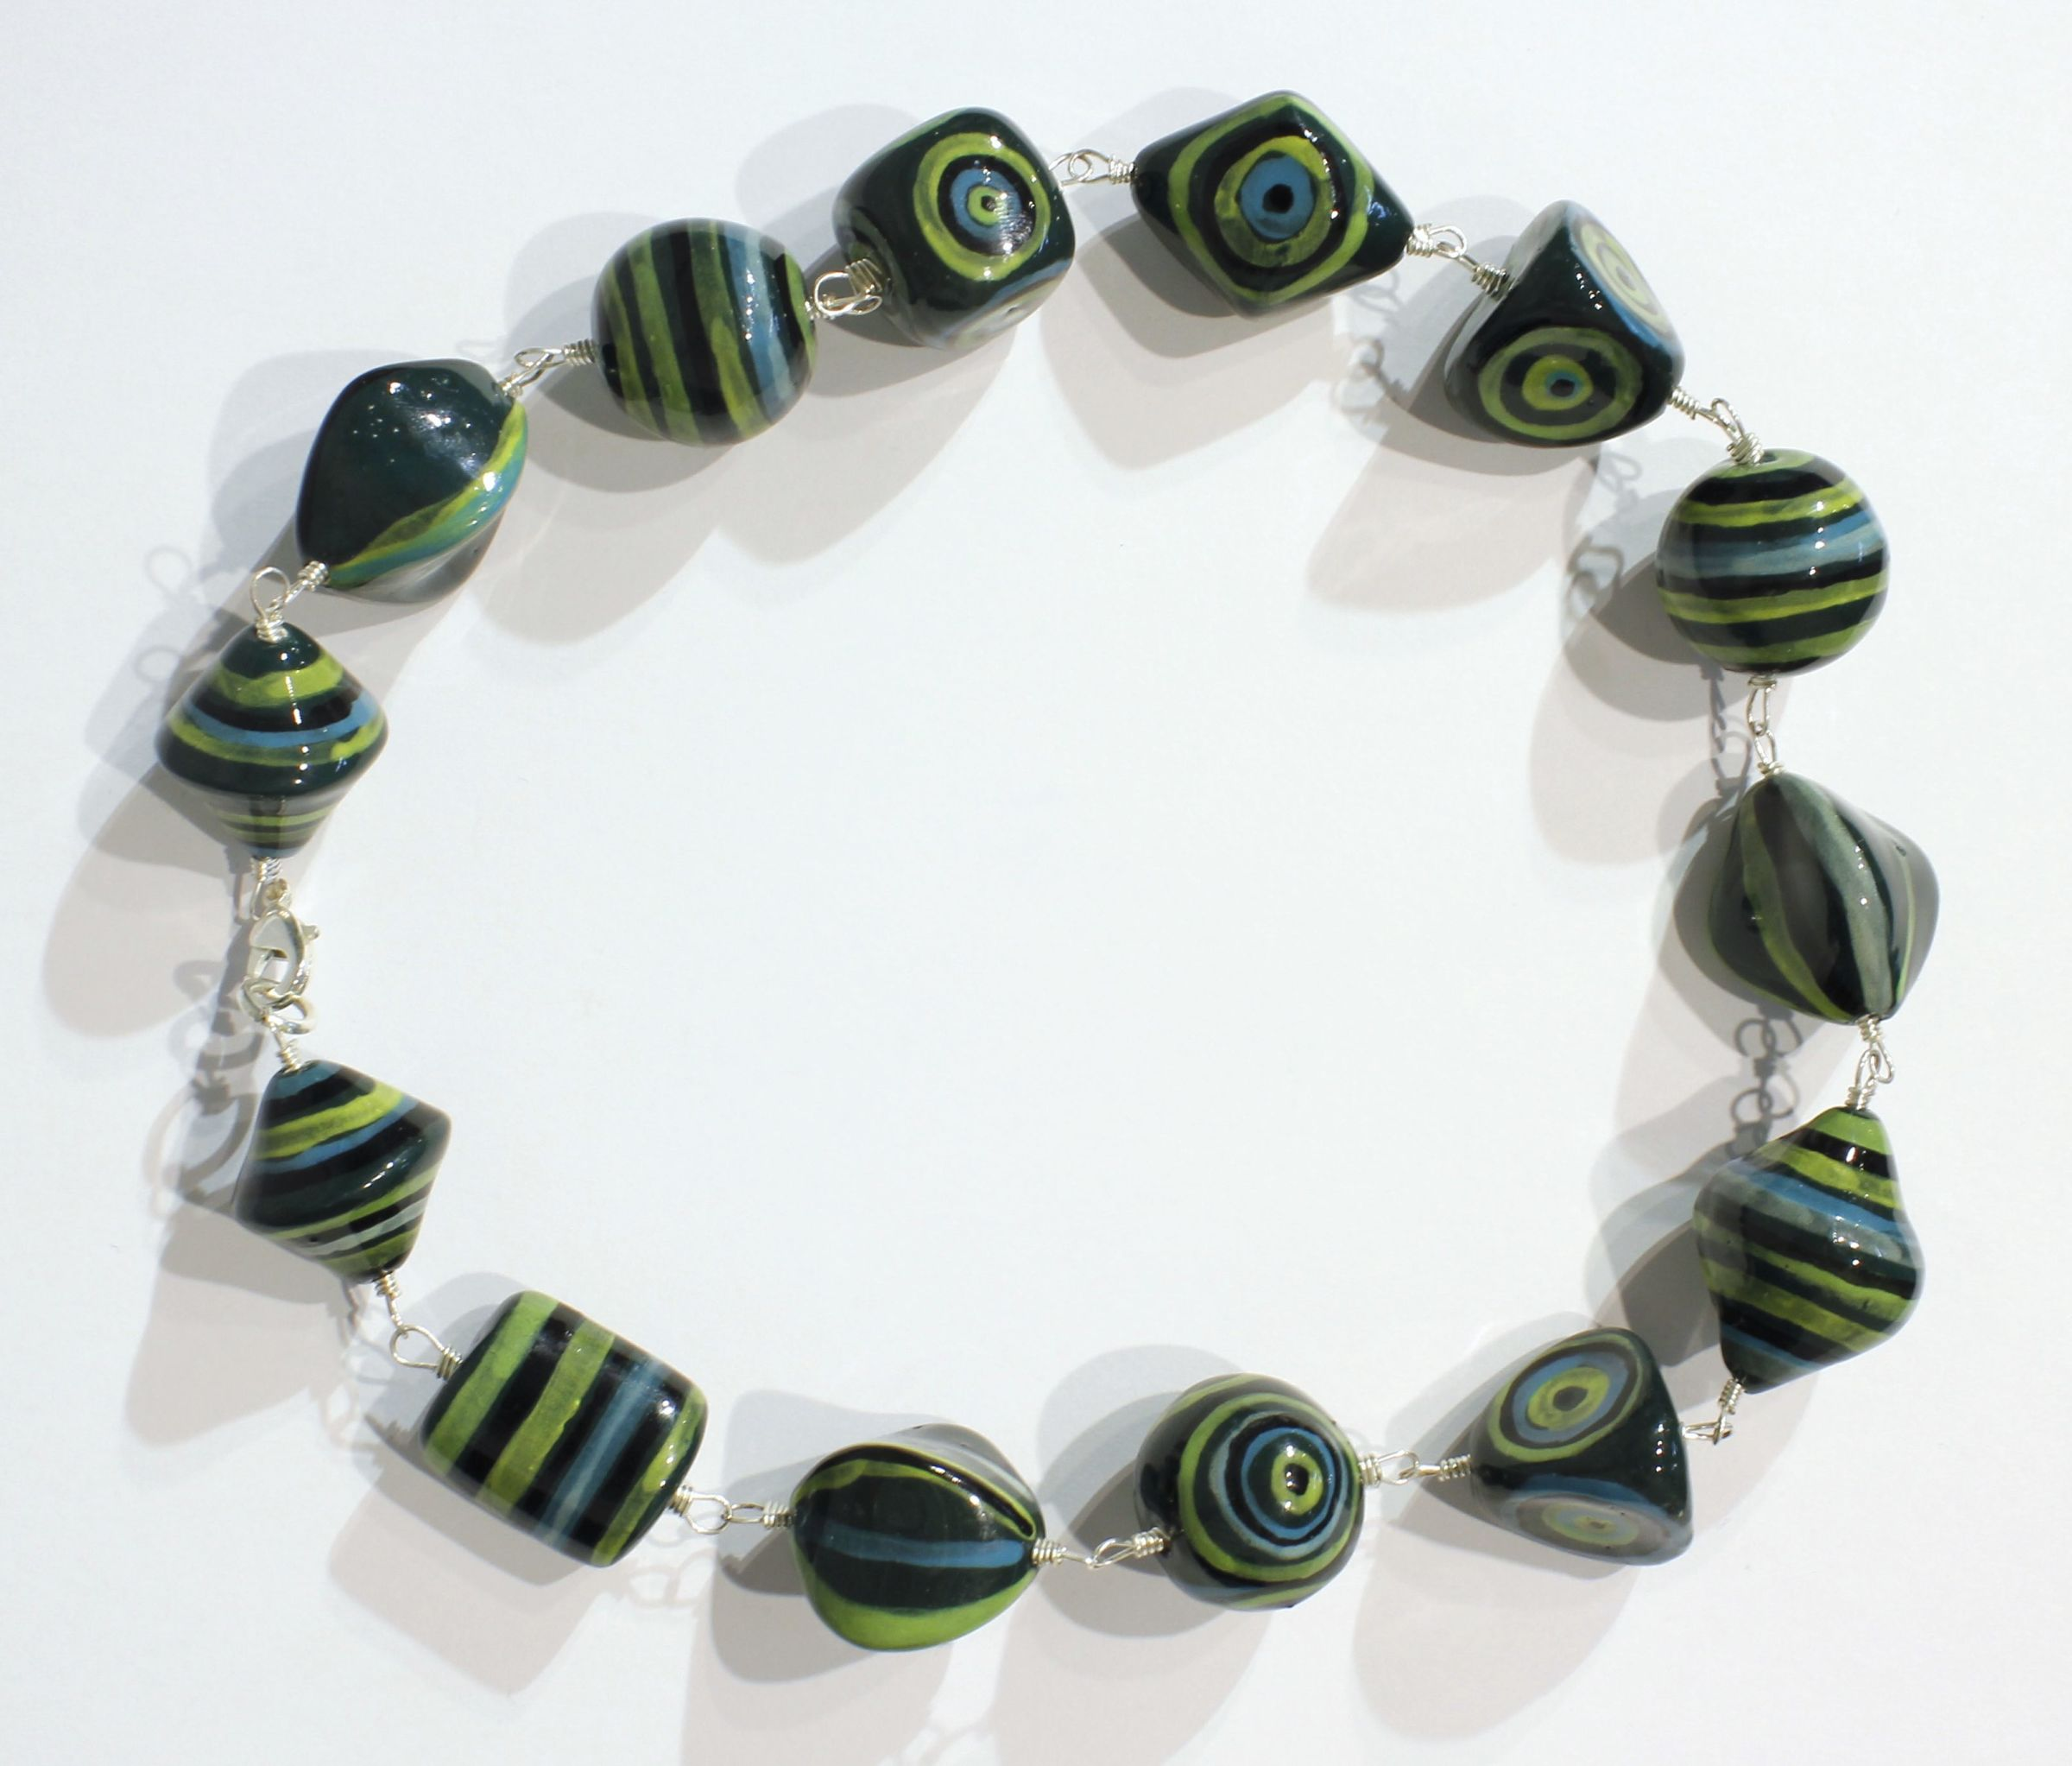 "<span class=""link fancybox-details-link""><a href=""/artists/146-elinor-lamond/works/2510-elinor-lamond-green-and-blue-striped-necklace-2017/"">View Detail Page</a></span><div class=""artist""><strong>Elinor Lamond</strong></div> <div class=""title""><em>Green and Blue Striped Necklace </em>, 2017</div> <div class=""medium"">handmade ceramic beads</div><div class=""price"">£100.00</div><div class=""copyright_line"">Copyright The Artist</div>"